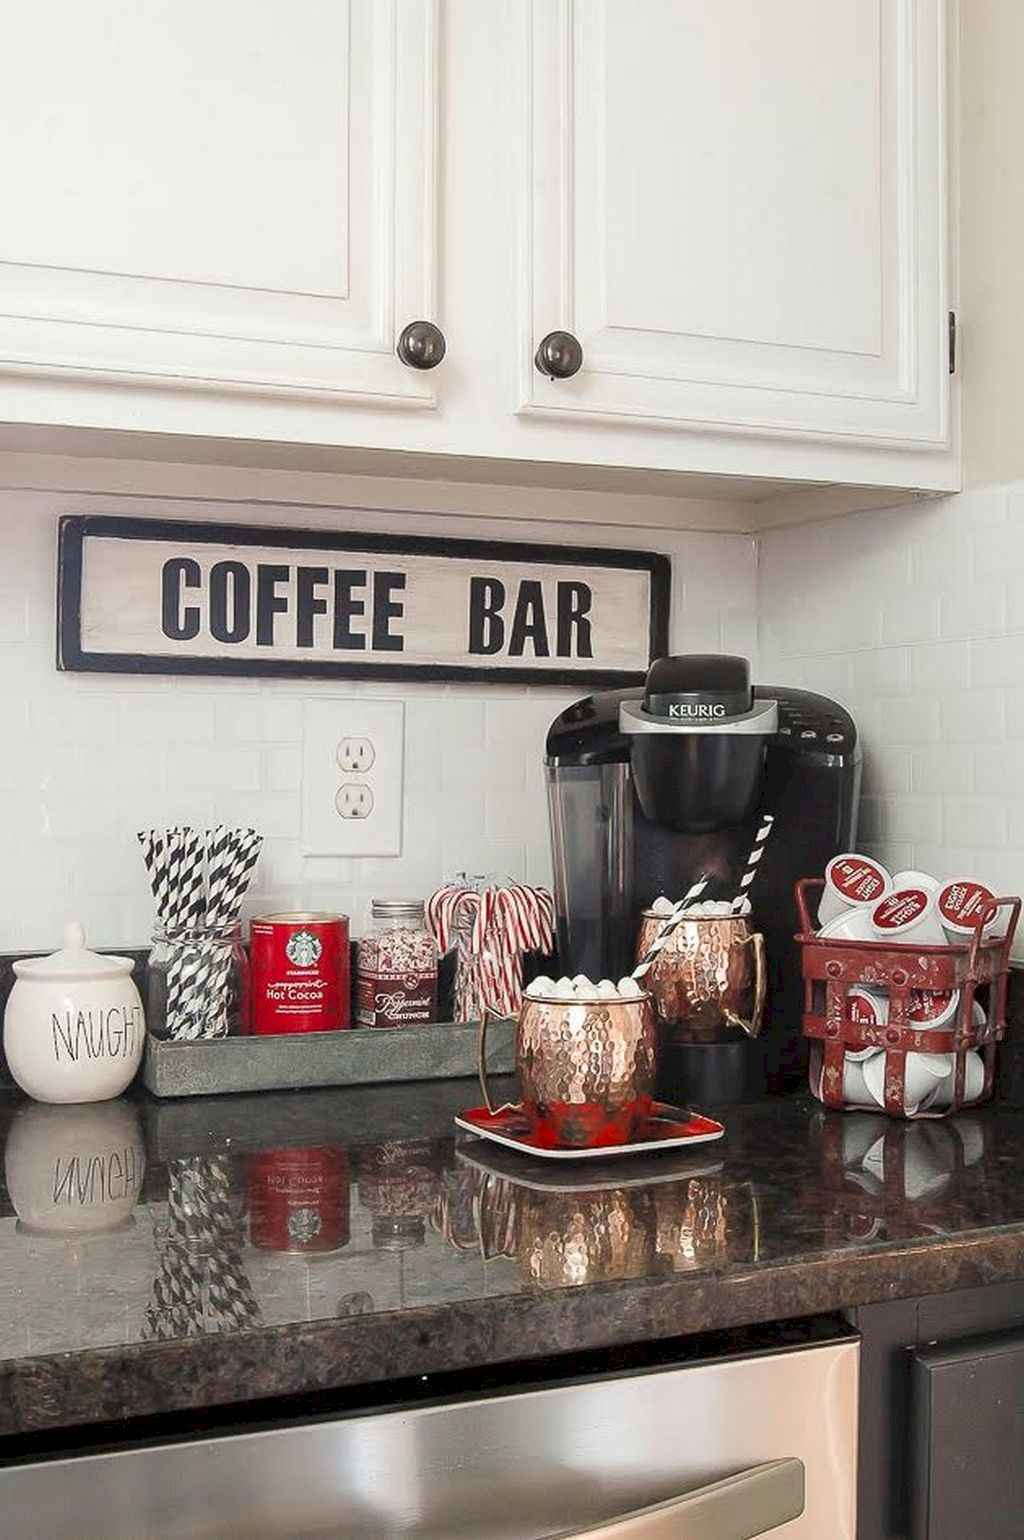 Clever college apartment decorating ideas on a budget (12)